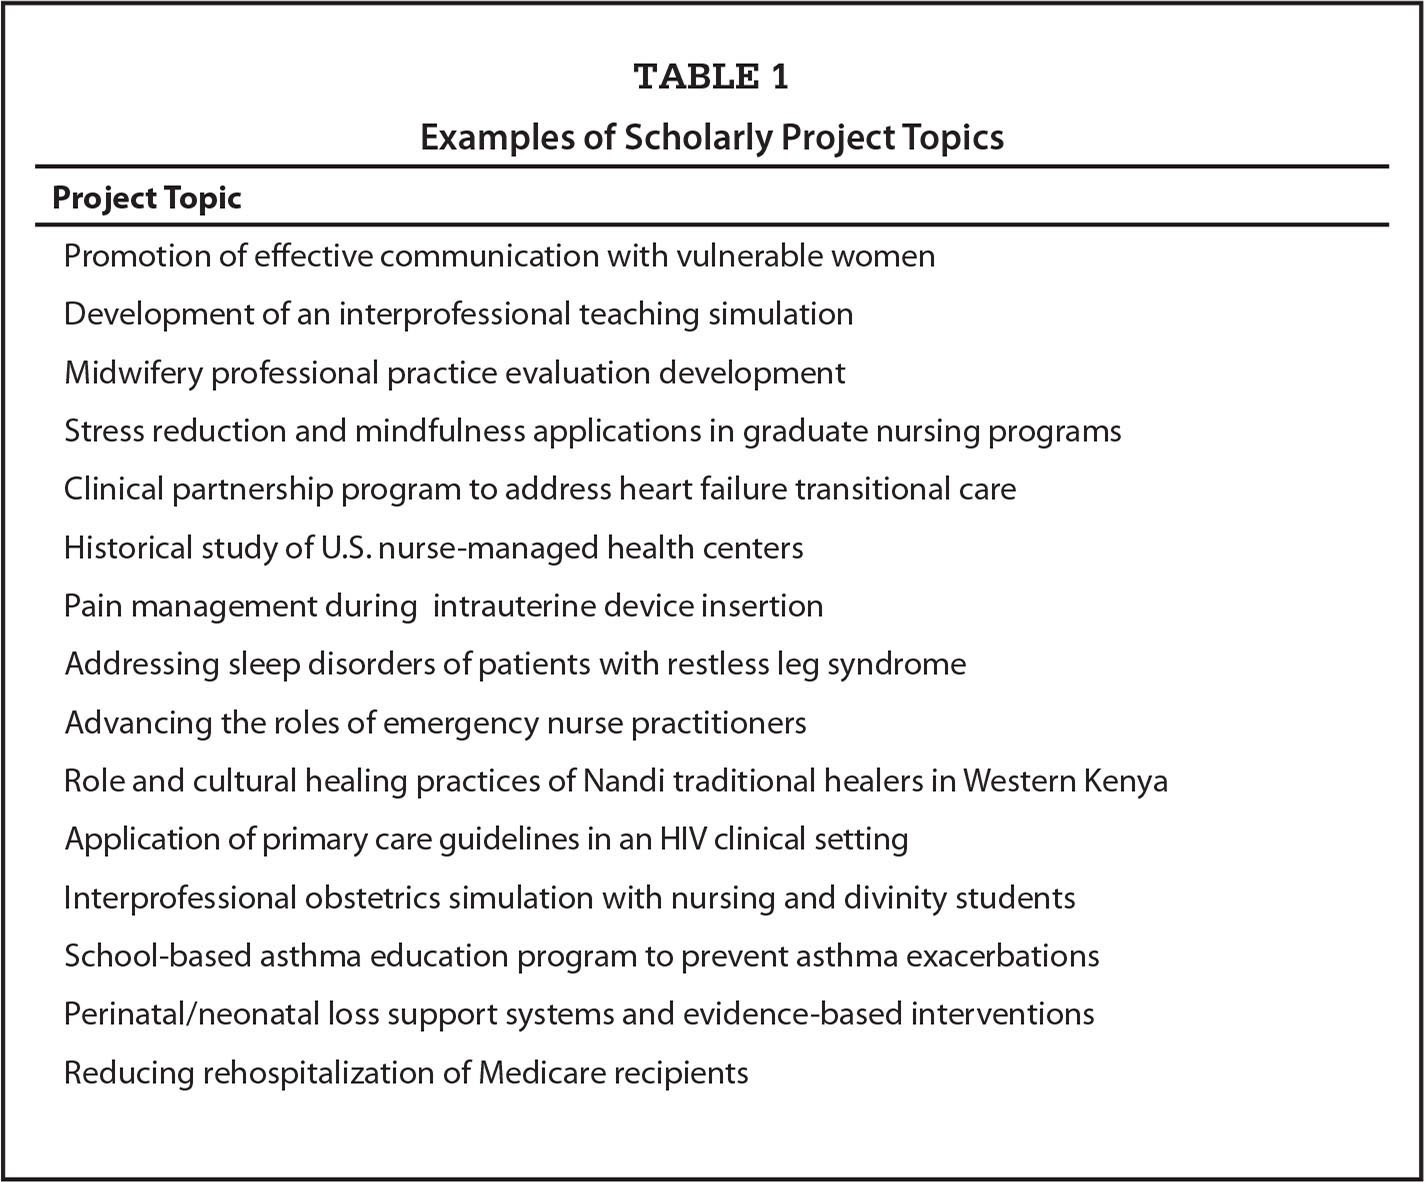 Examples of Scholarly Project Topics